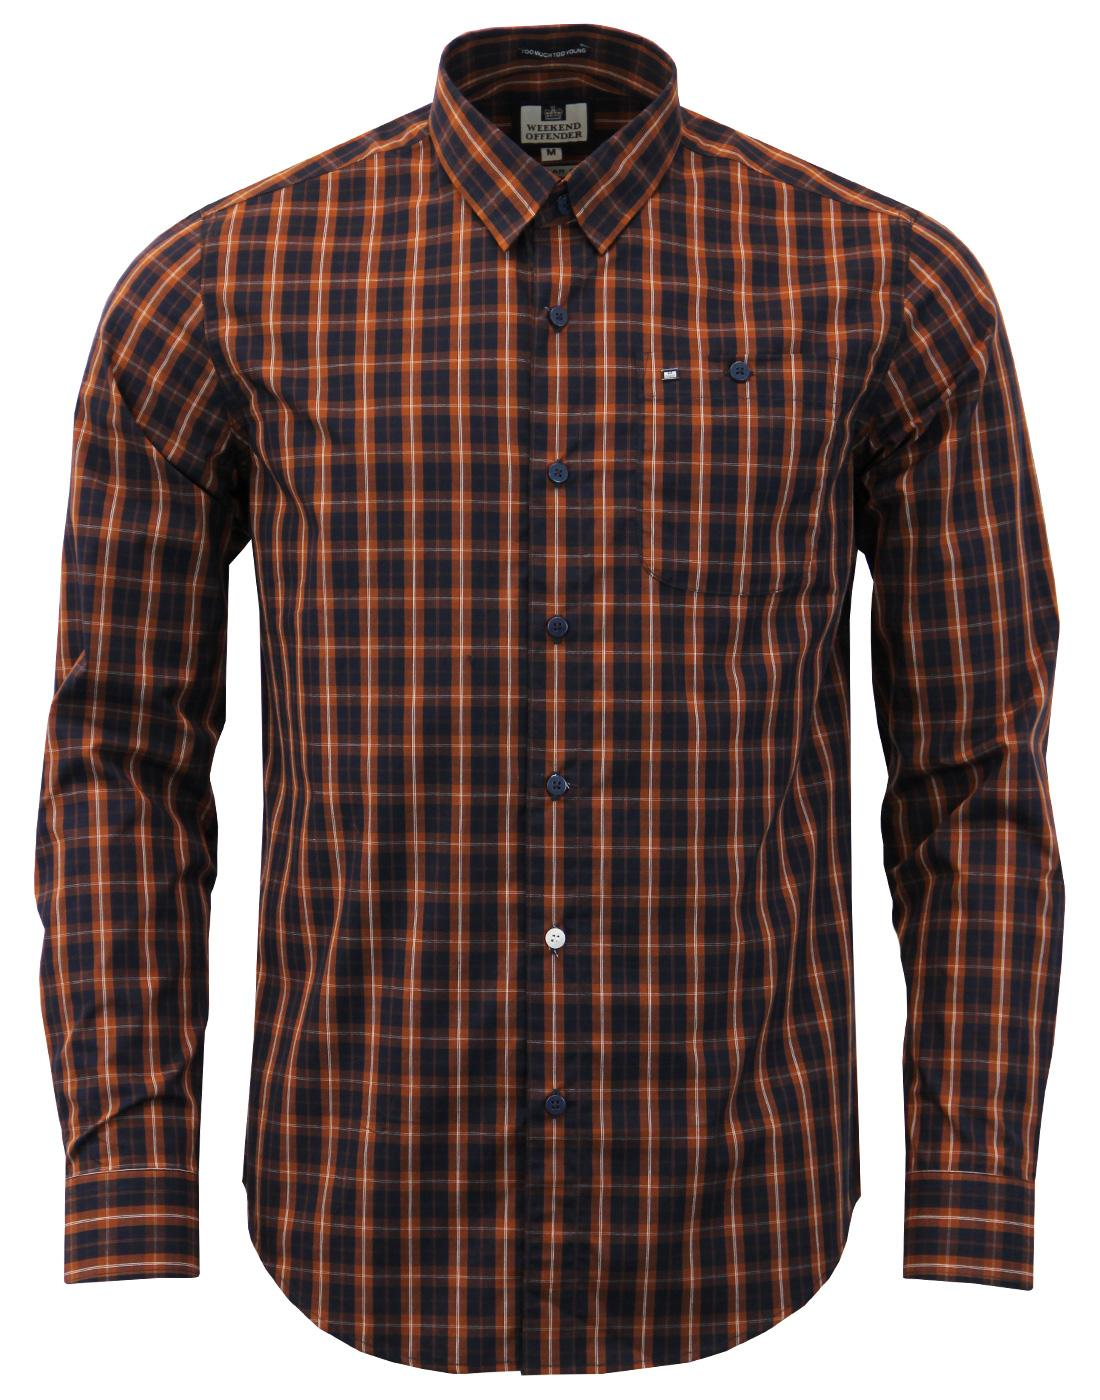 Patton WEEKEND OFFENDER Button Under Check Shirt